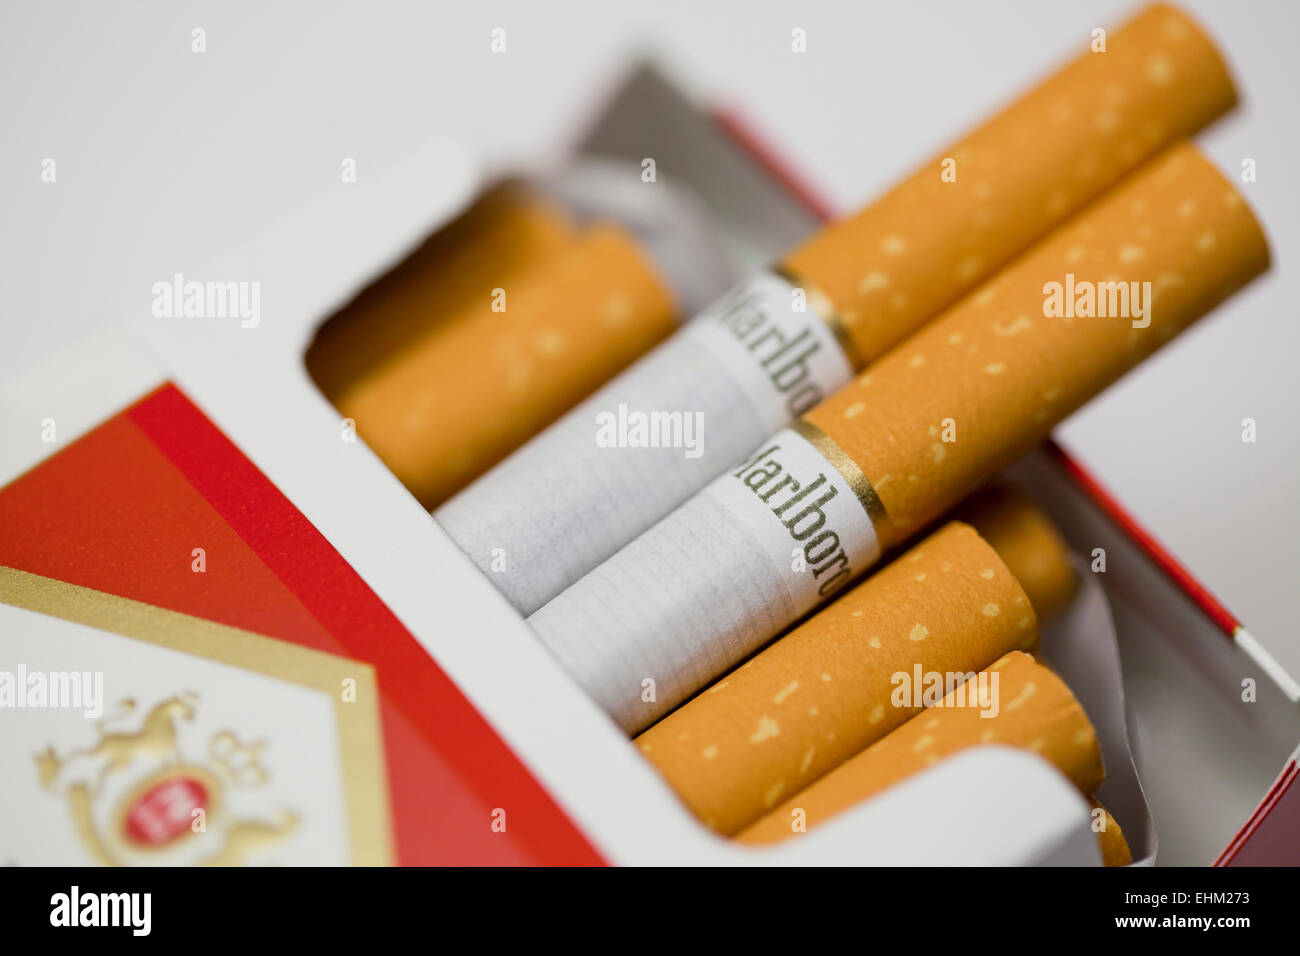 Buy Ireland cigarettes Sobranie